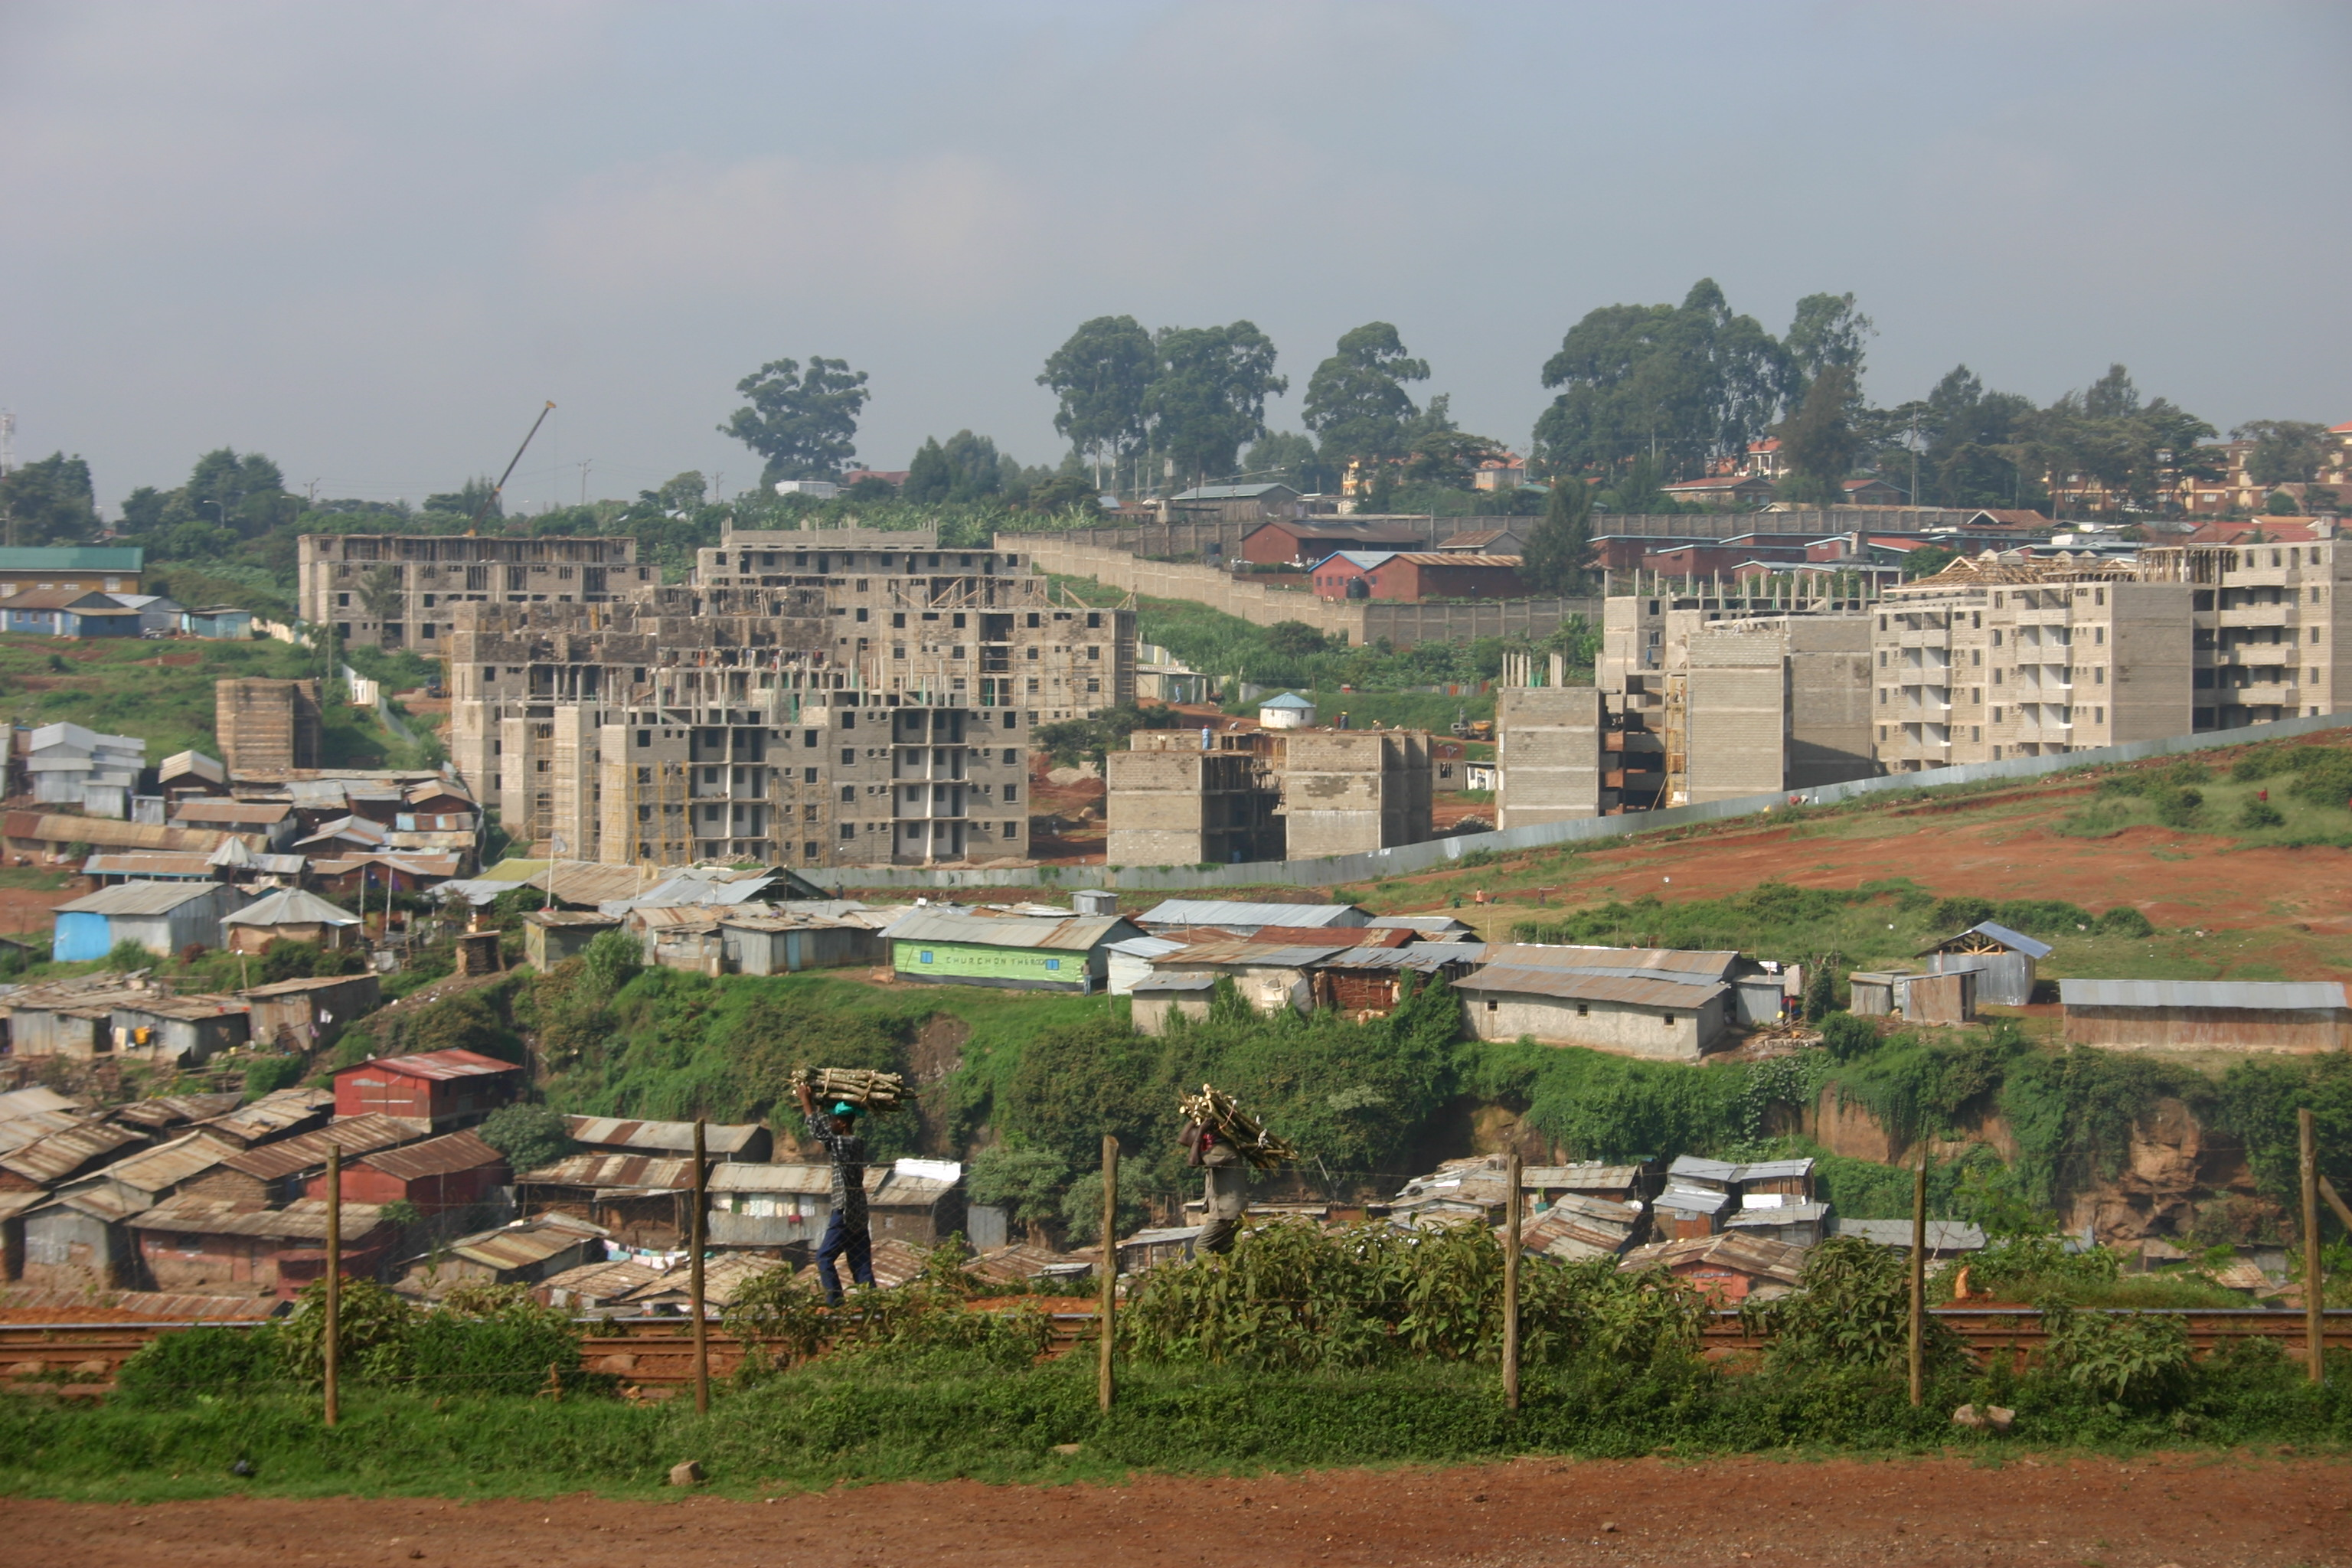 https://upload.wikimedia.org/wikipedia/commons/8/8b/Kibera,_Nairobi_May_2007.jpg